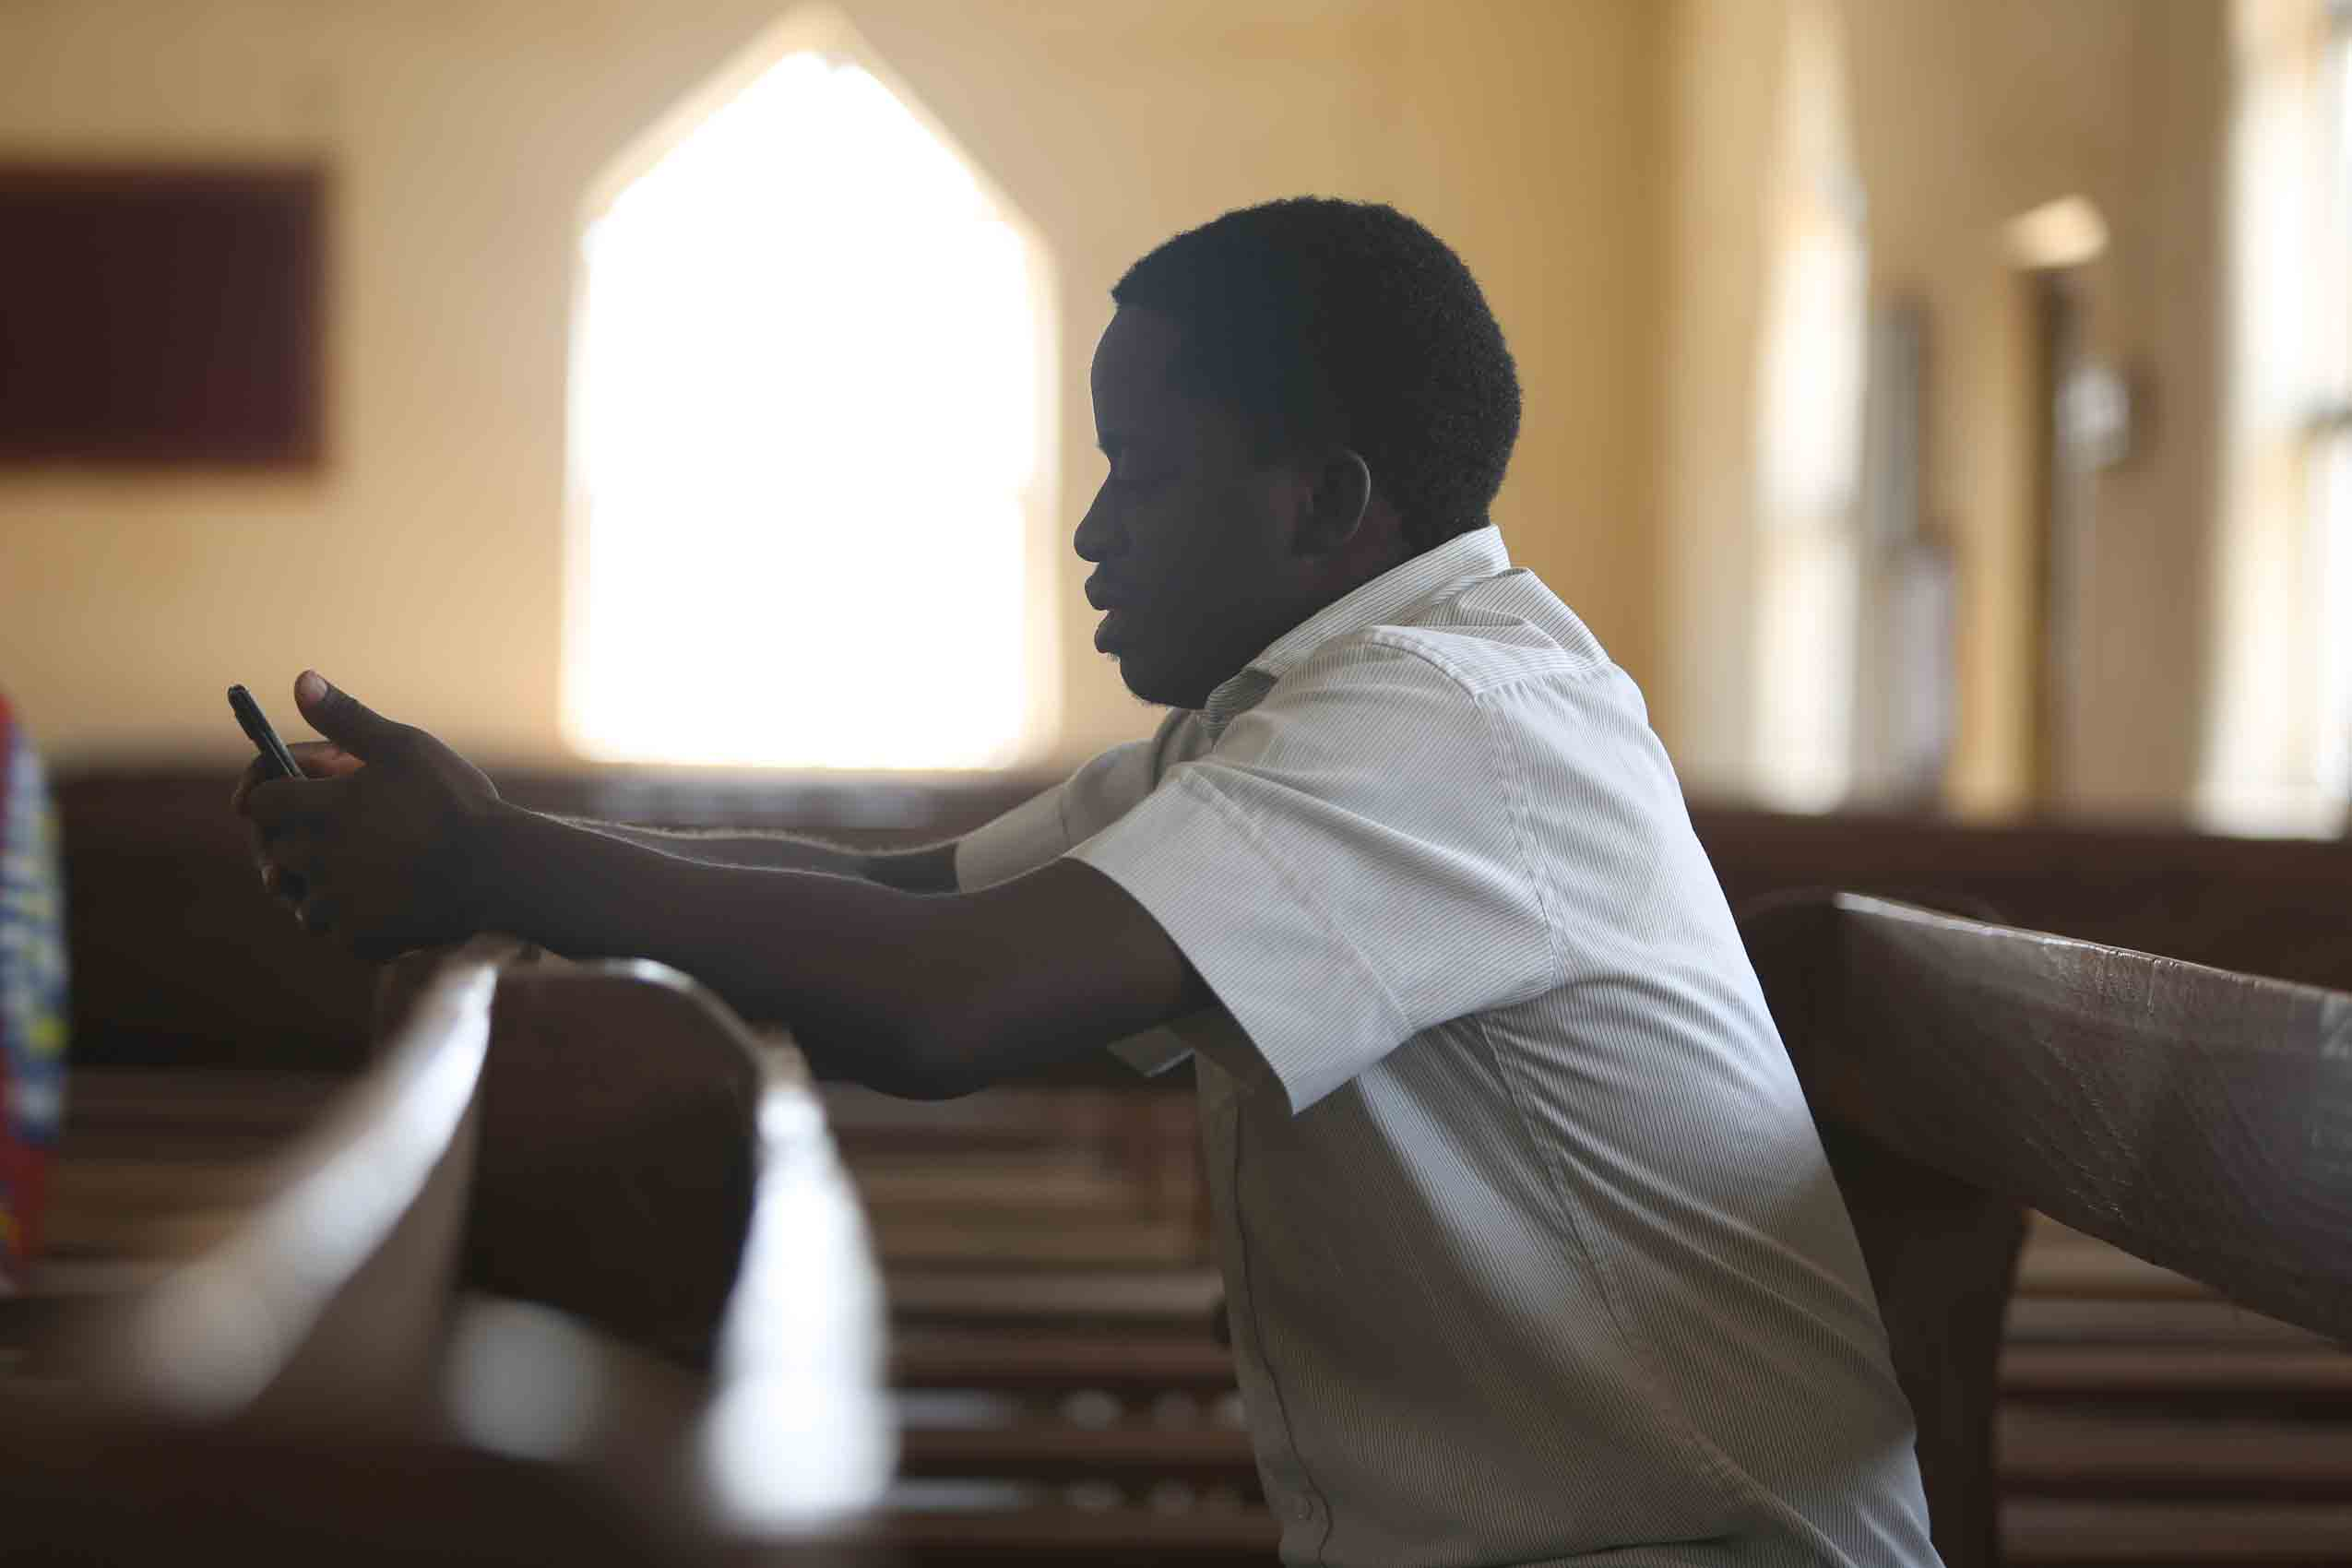 Crackdown against Christians in Eritrea continues